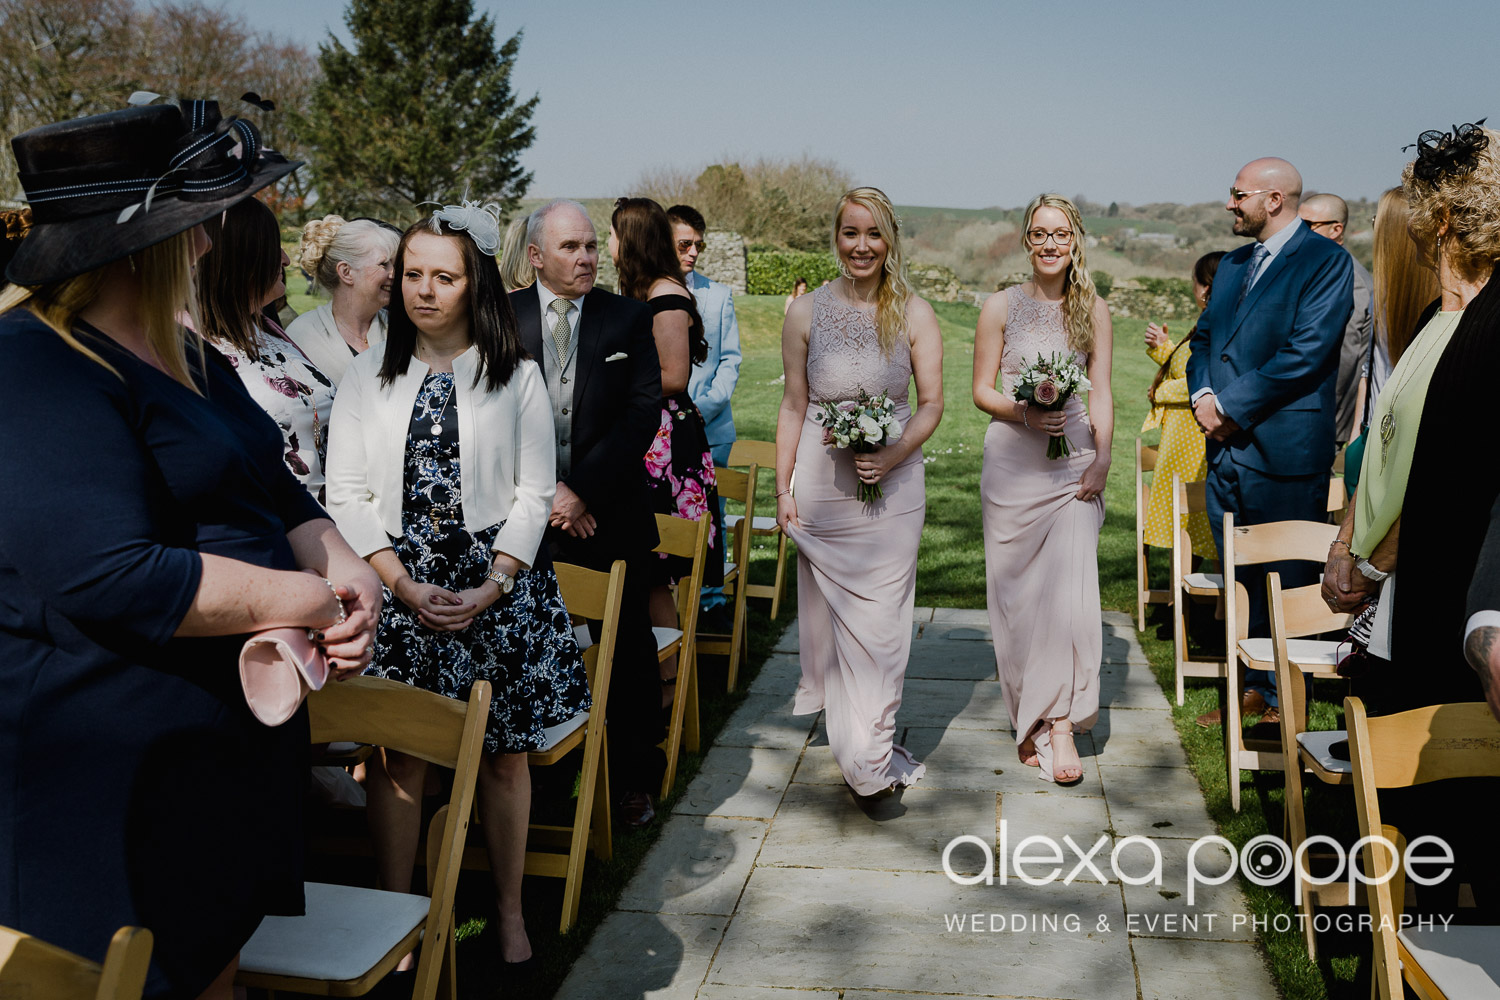 BJ_wedding_trevenna-15.jpg